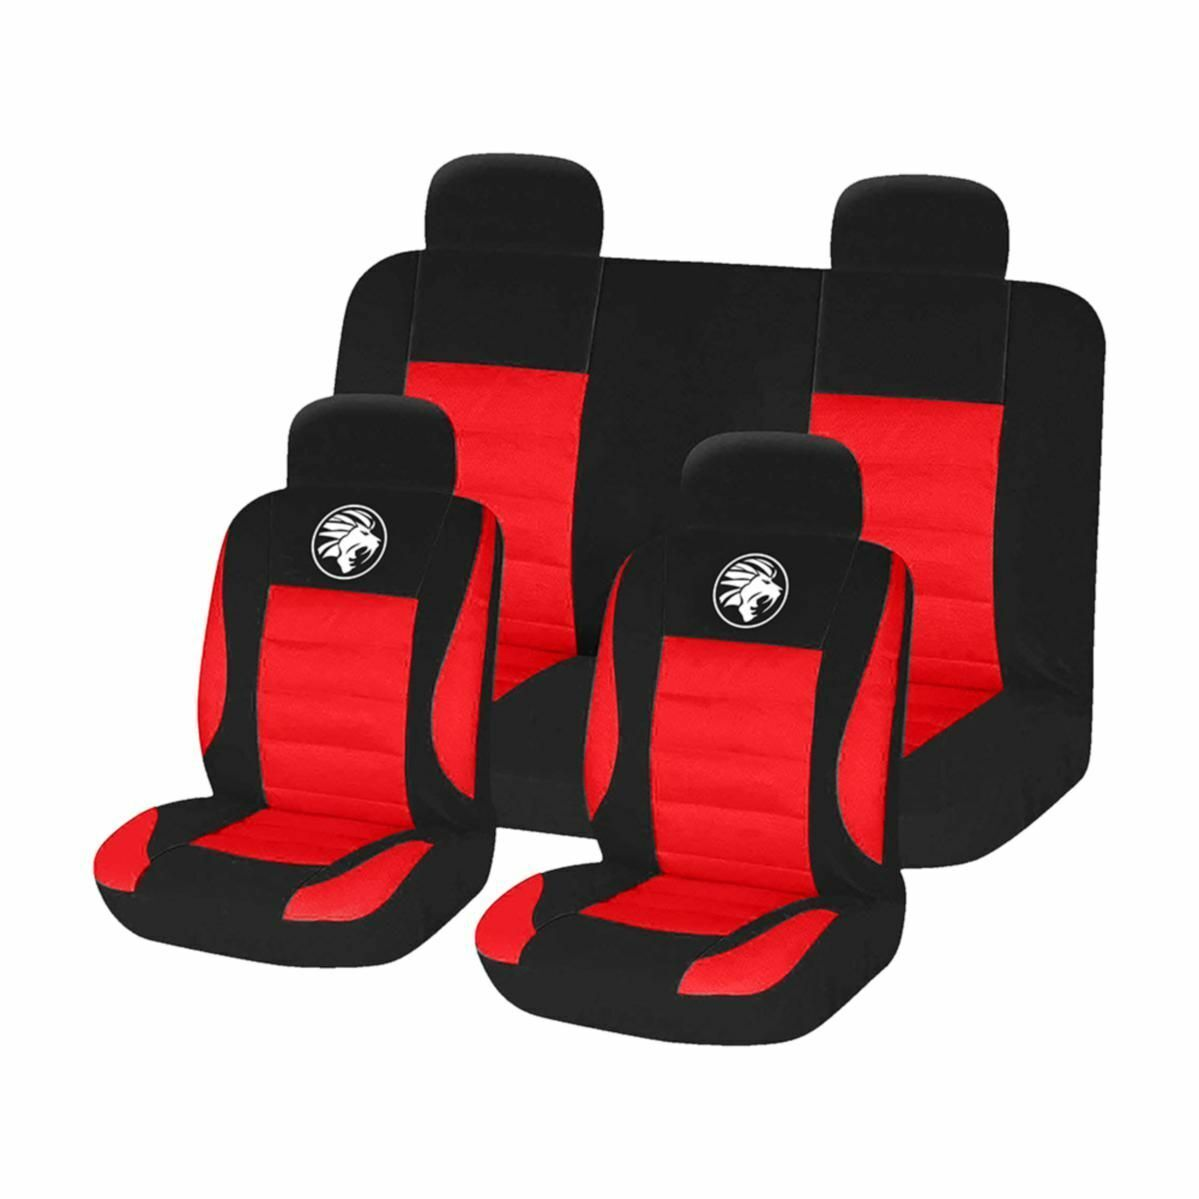 CAR SEAT COVER SET BLACK RED 8 PIECES UNIVERSAL FIT